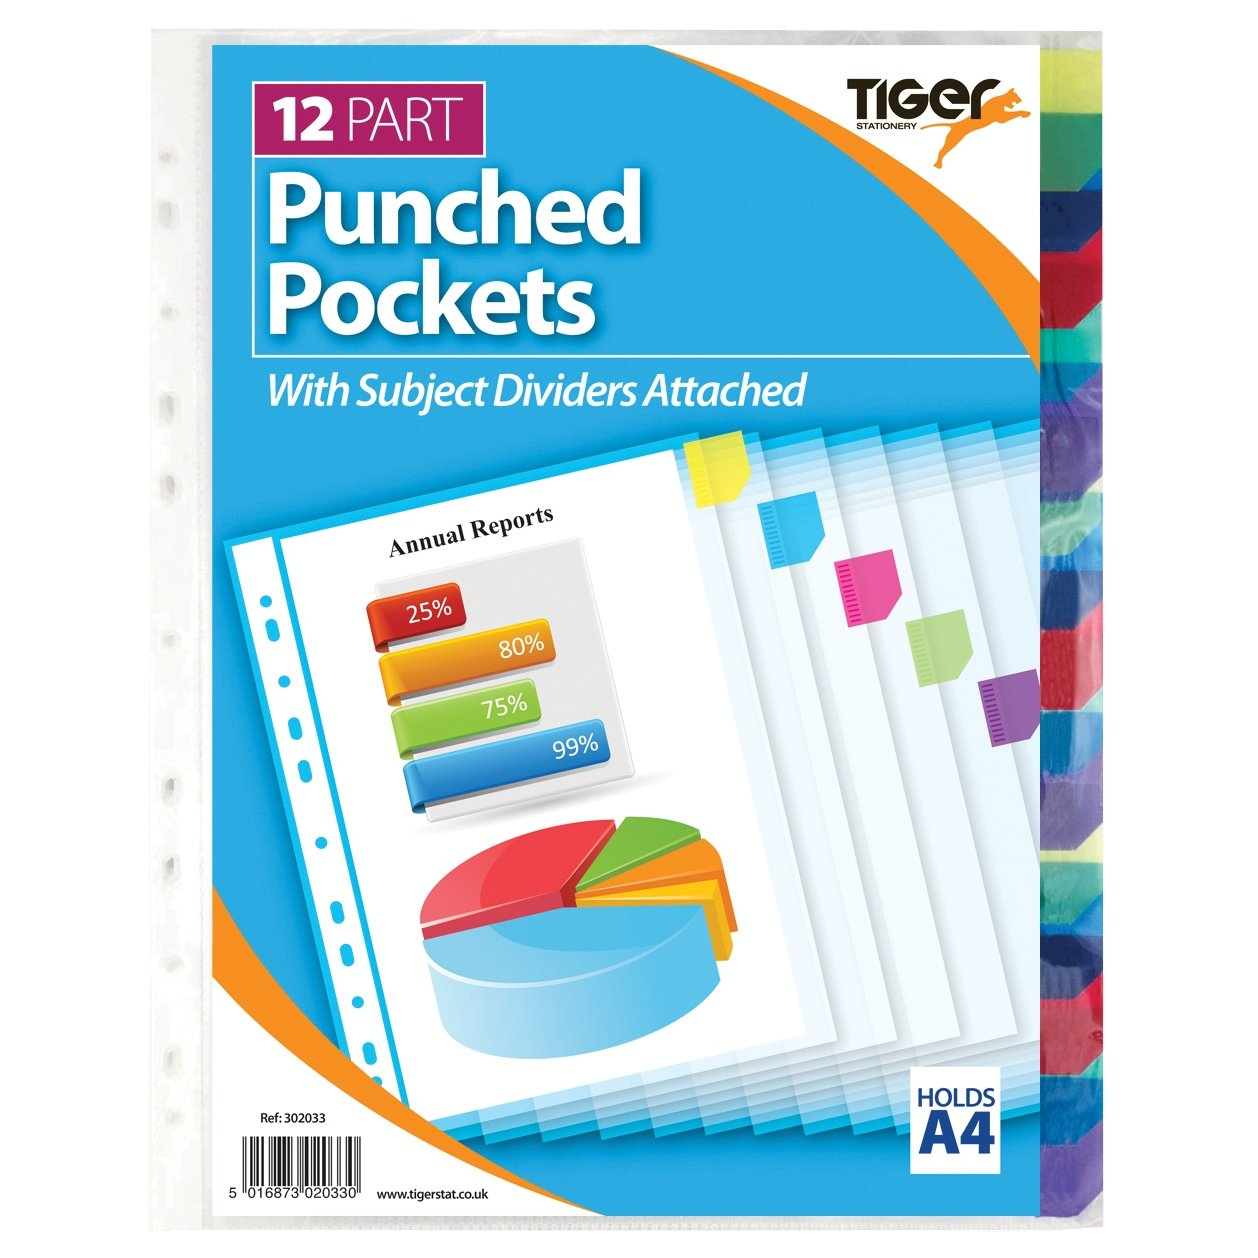 12 Part Punched Pockets with Subject Dividers Attached